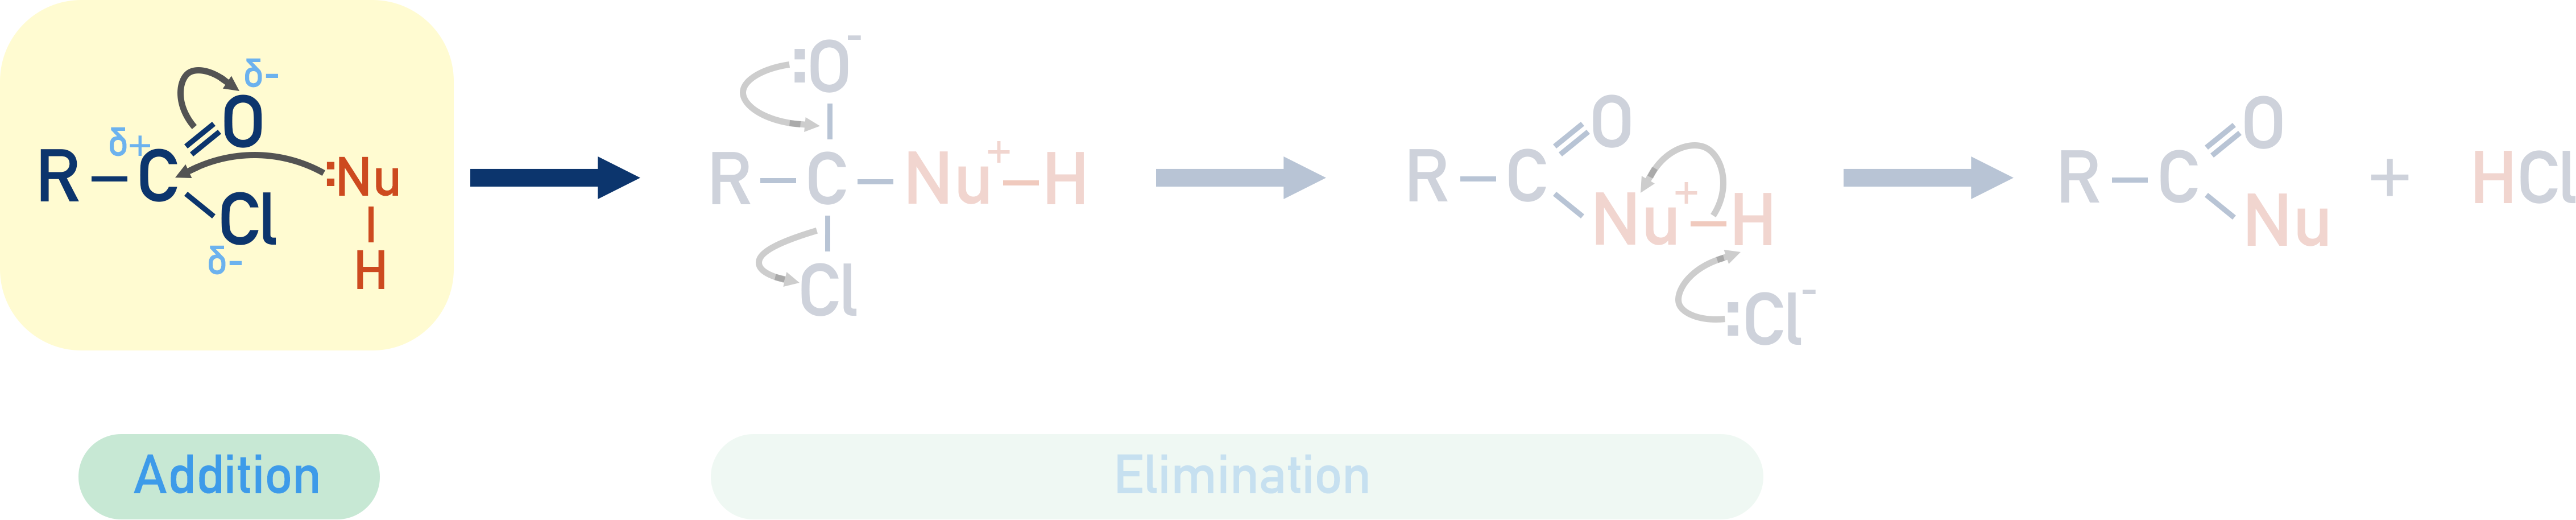 addition step of nucleophilic addition-elimination mechanism acyl chloride